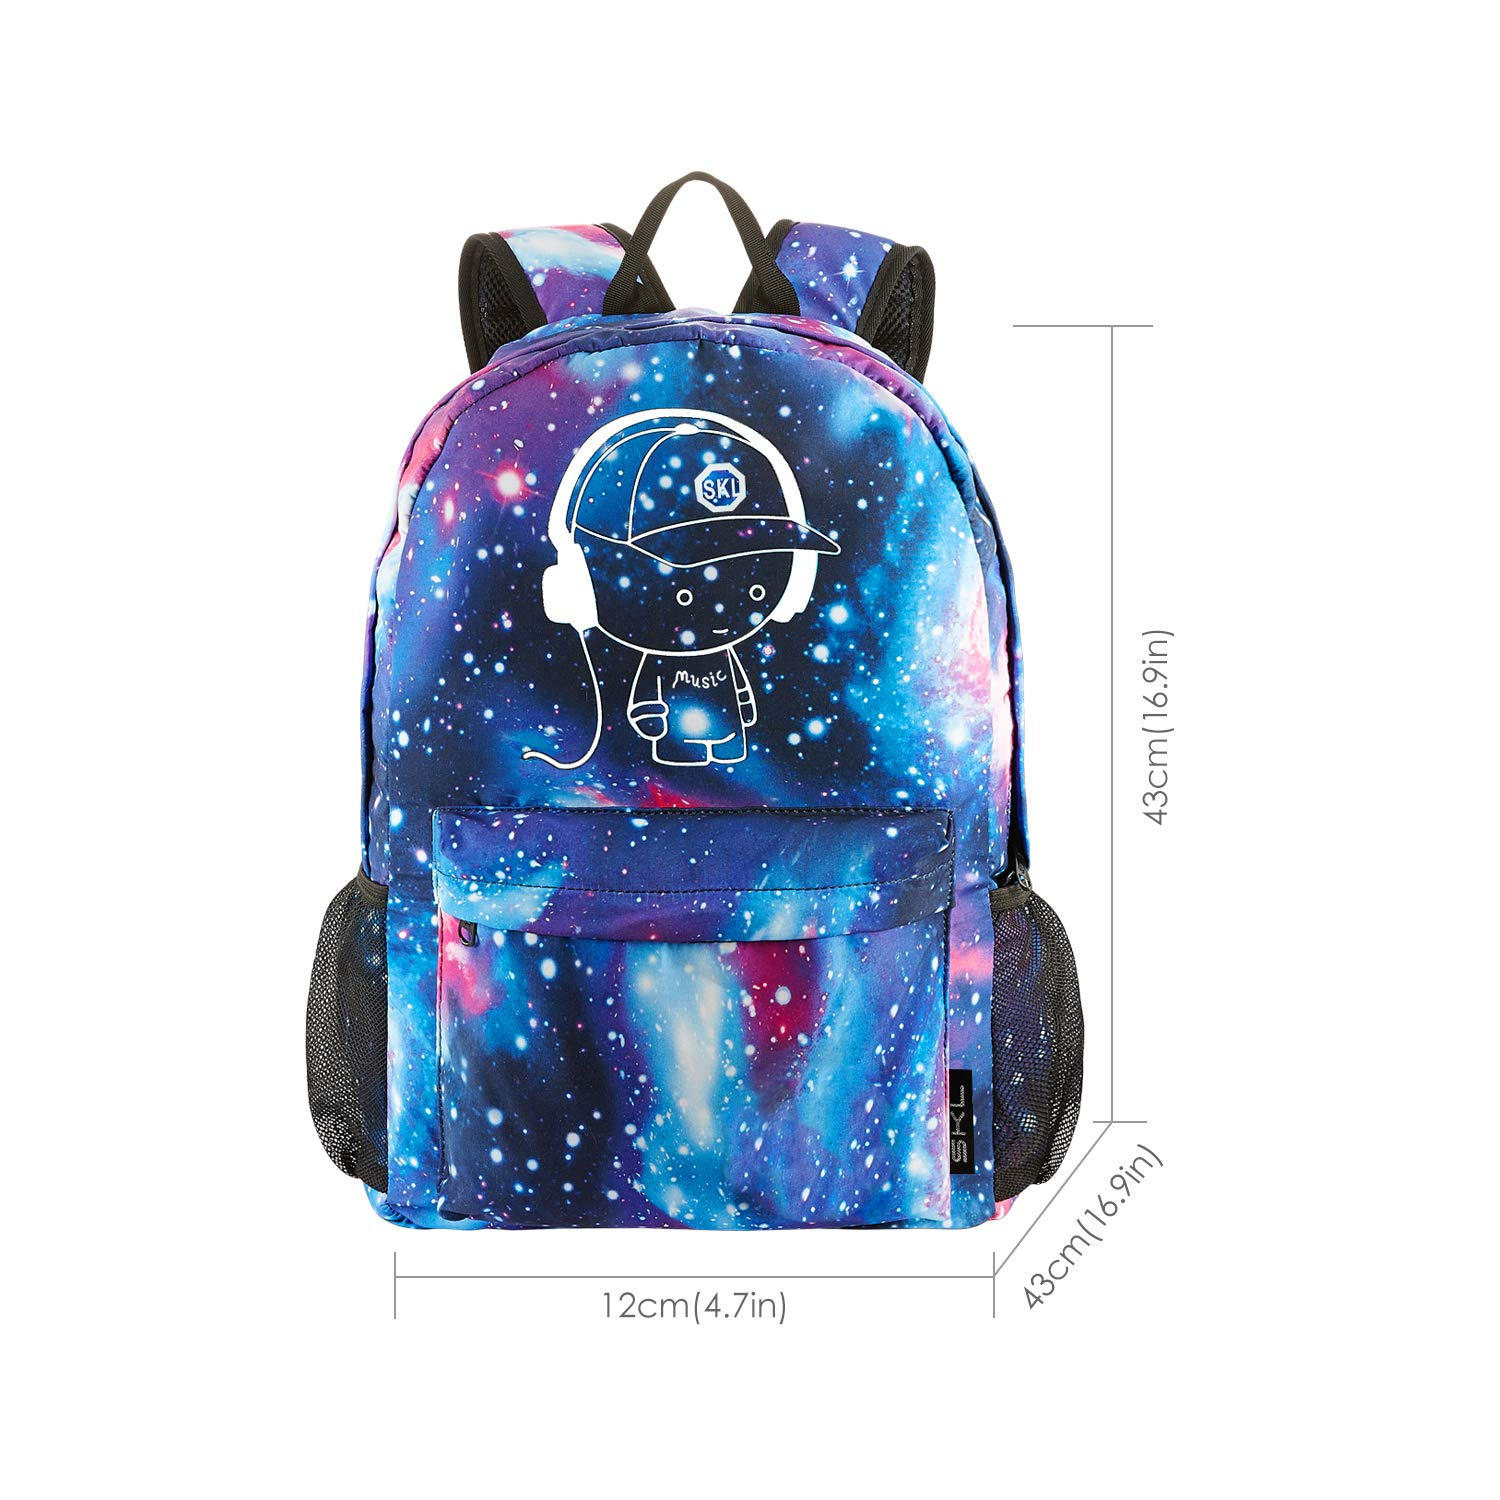 Amazon.com: School Backpack Cool Luminous School Bag Unisex Galaxy Laptop Bag with Pencil Bag for Boys Girls Teens - Blue: Computers & Accessories